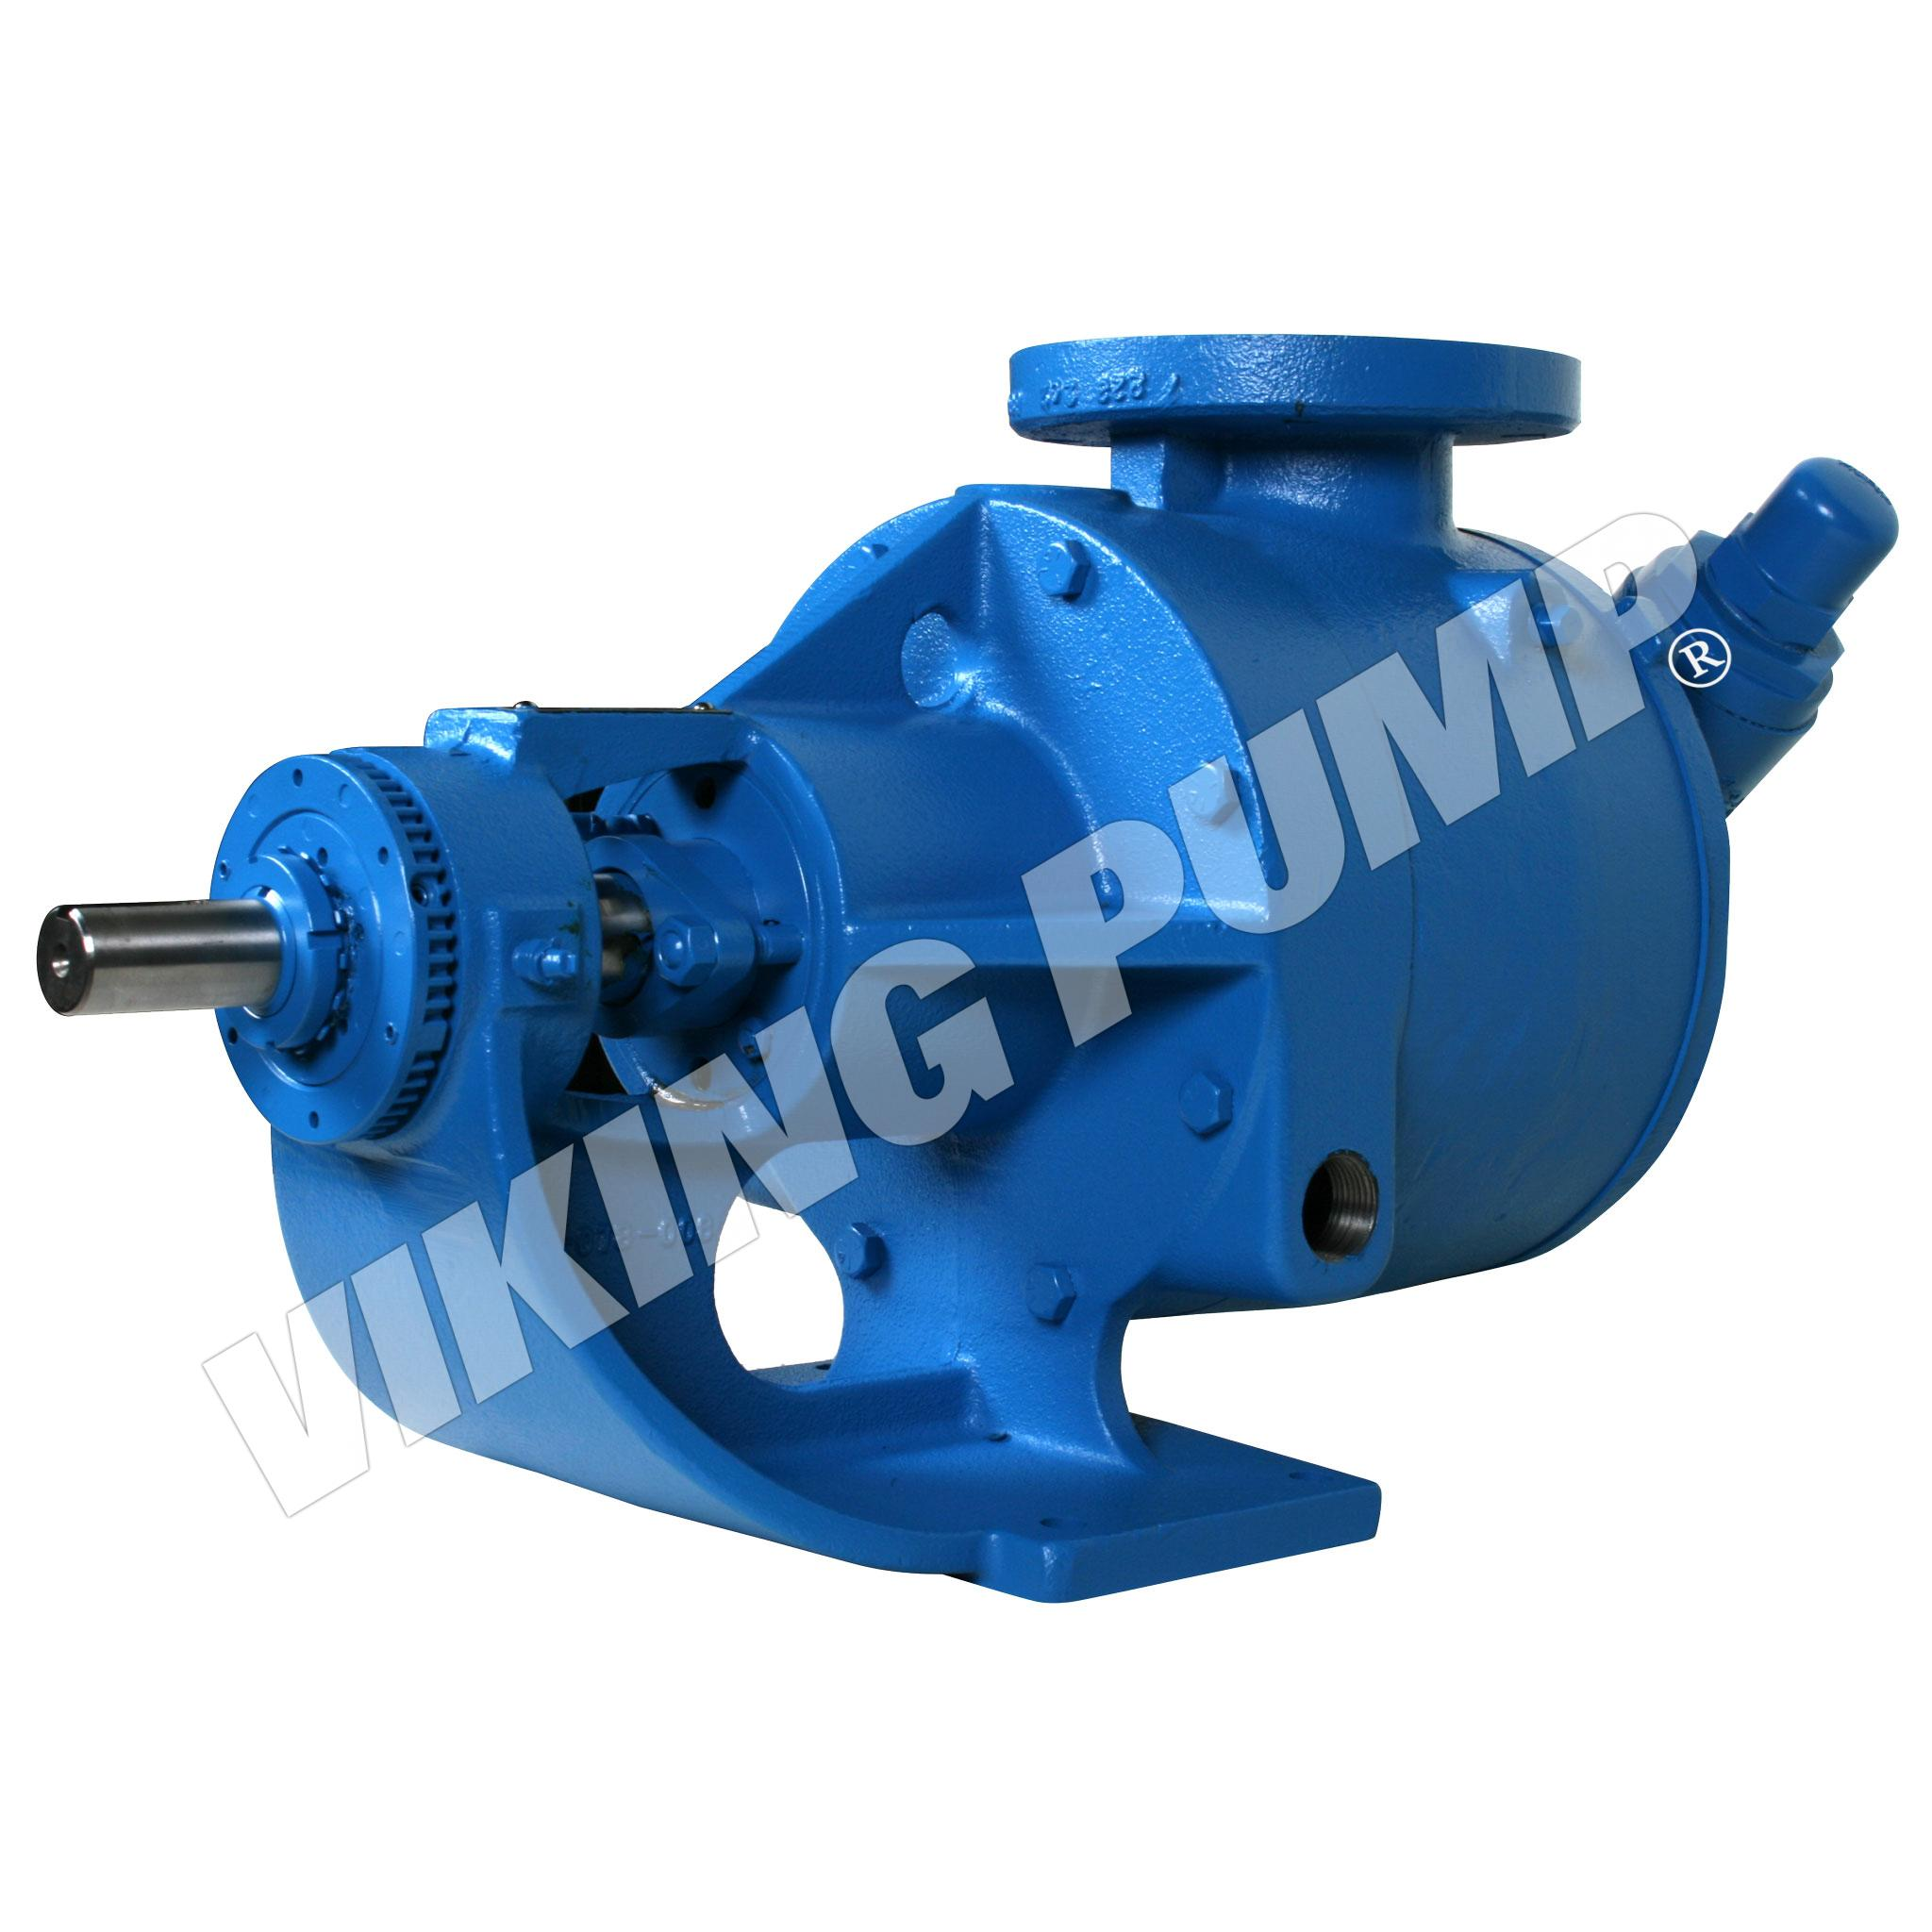 Model LL724, Foot Mounted, Packed Gland, Relief Valve Pump